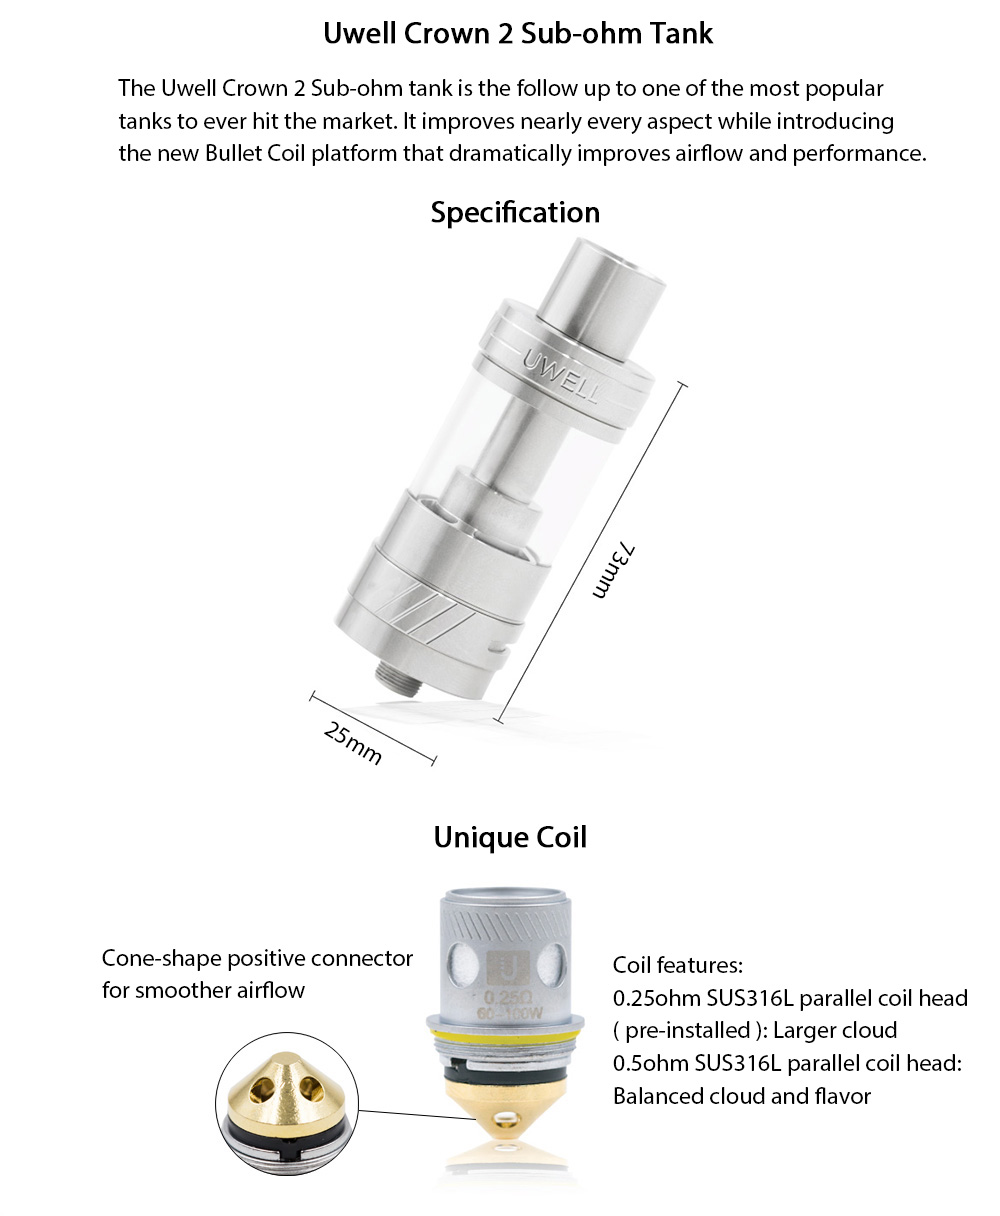 Original Uwell Crown 2 Sub-ohm Tank Atomizer Clearomizer with 5ml / 0.25ohm / 0.5ohm Conical SUS316L Parallel Coil Head / Tank Locking Screw for E Cigarette